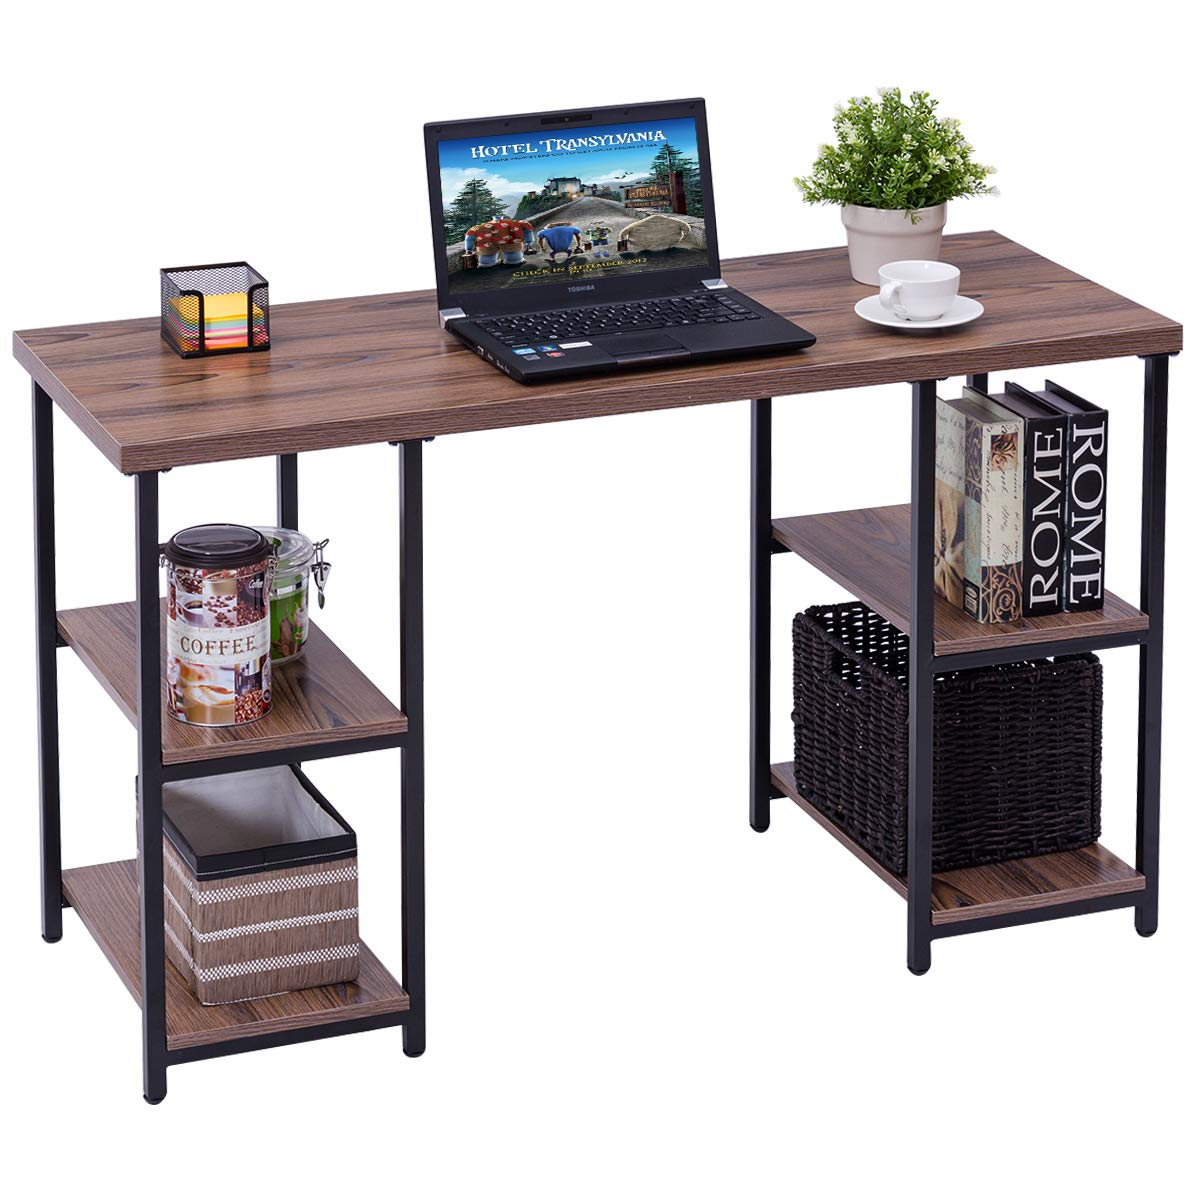 Compact home office Efficient Tangkula Computer Desk Writing Desk Simple Compact Home Office Workstation Laptop Pc Workstation Study Desk Writing Table With Storage Shelves Heavy Amazoncom Amazoncom Tangkula Computer Desk Writing Desk Simple Compact Home